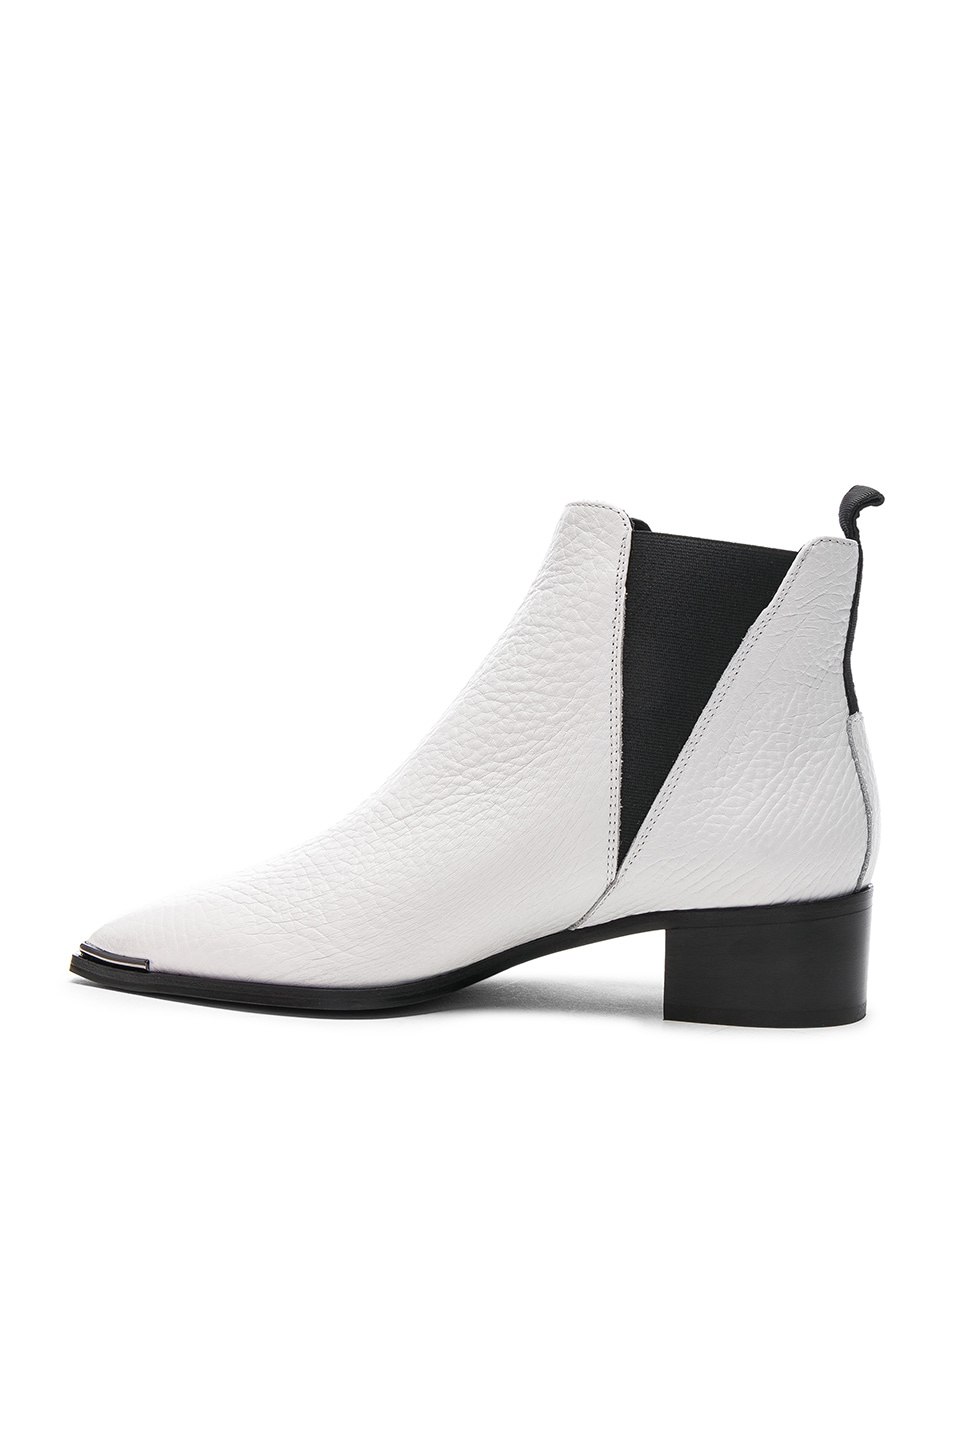 Image 5 of Acne Studios Grained Leather Jensen Booties in White